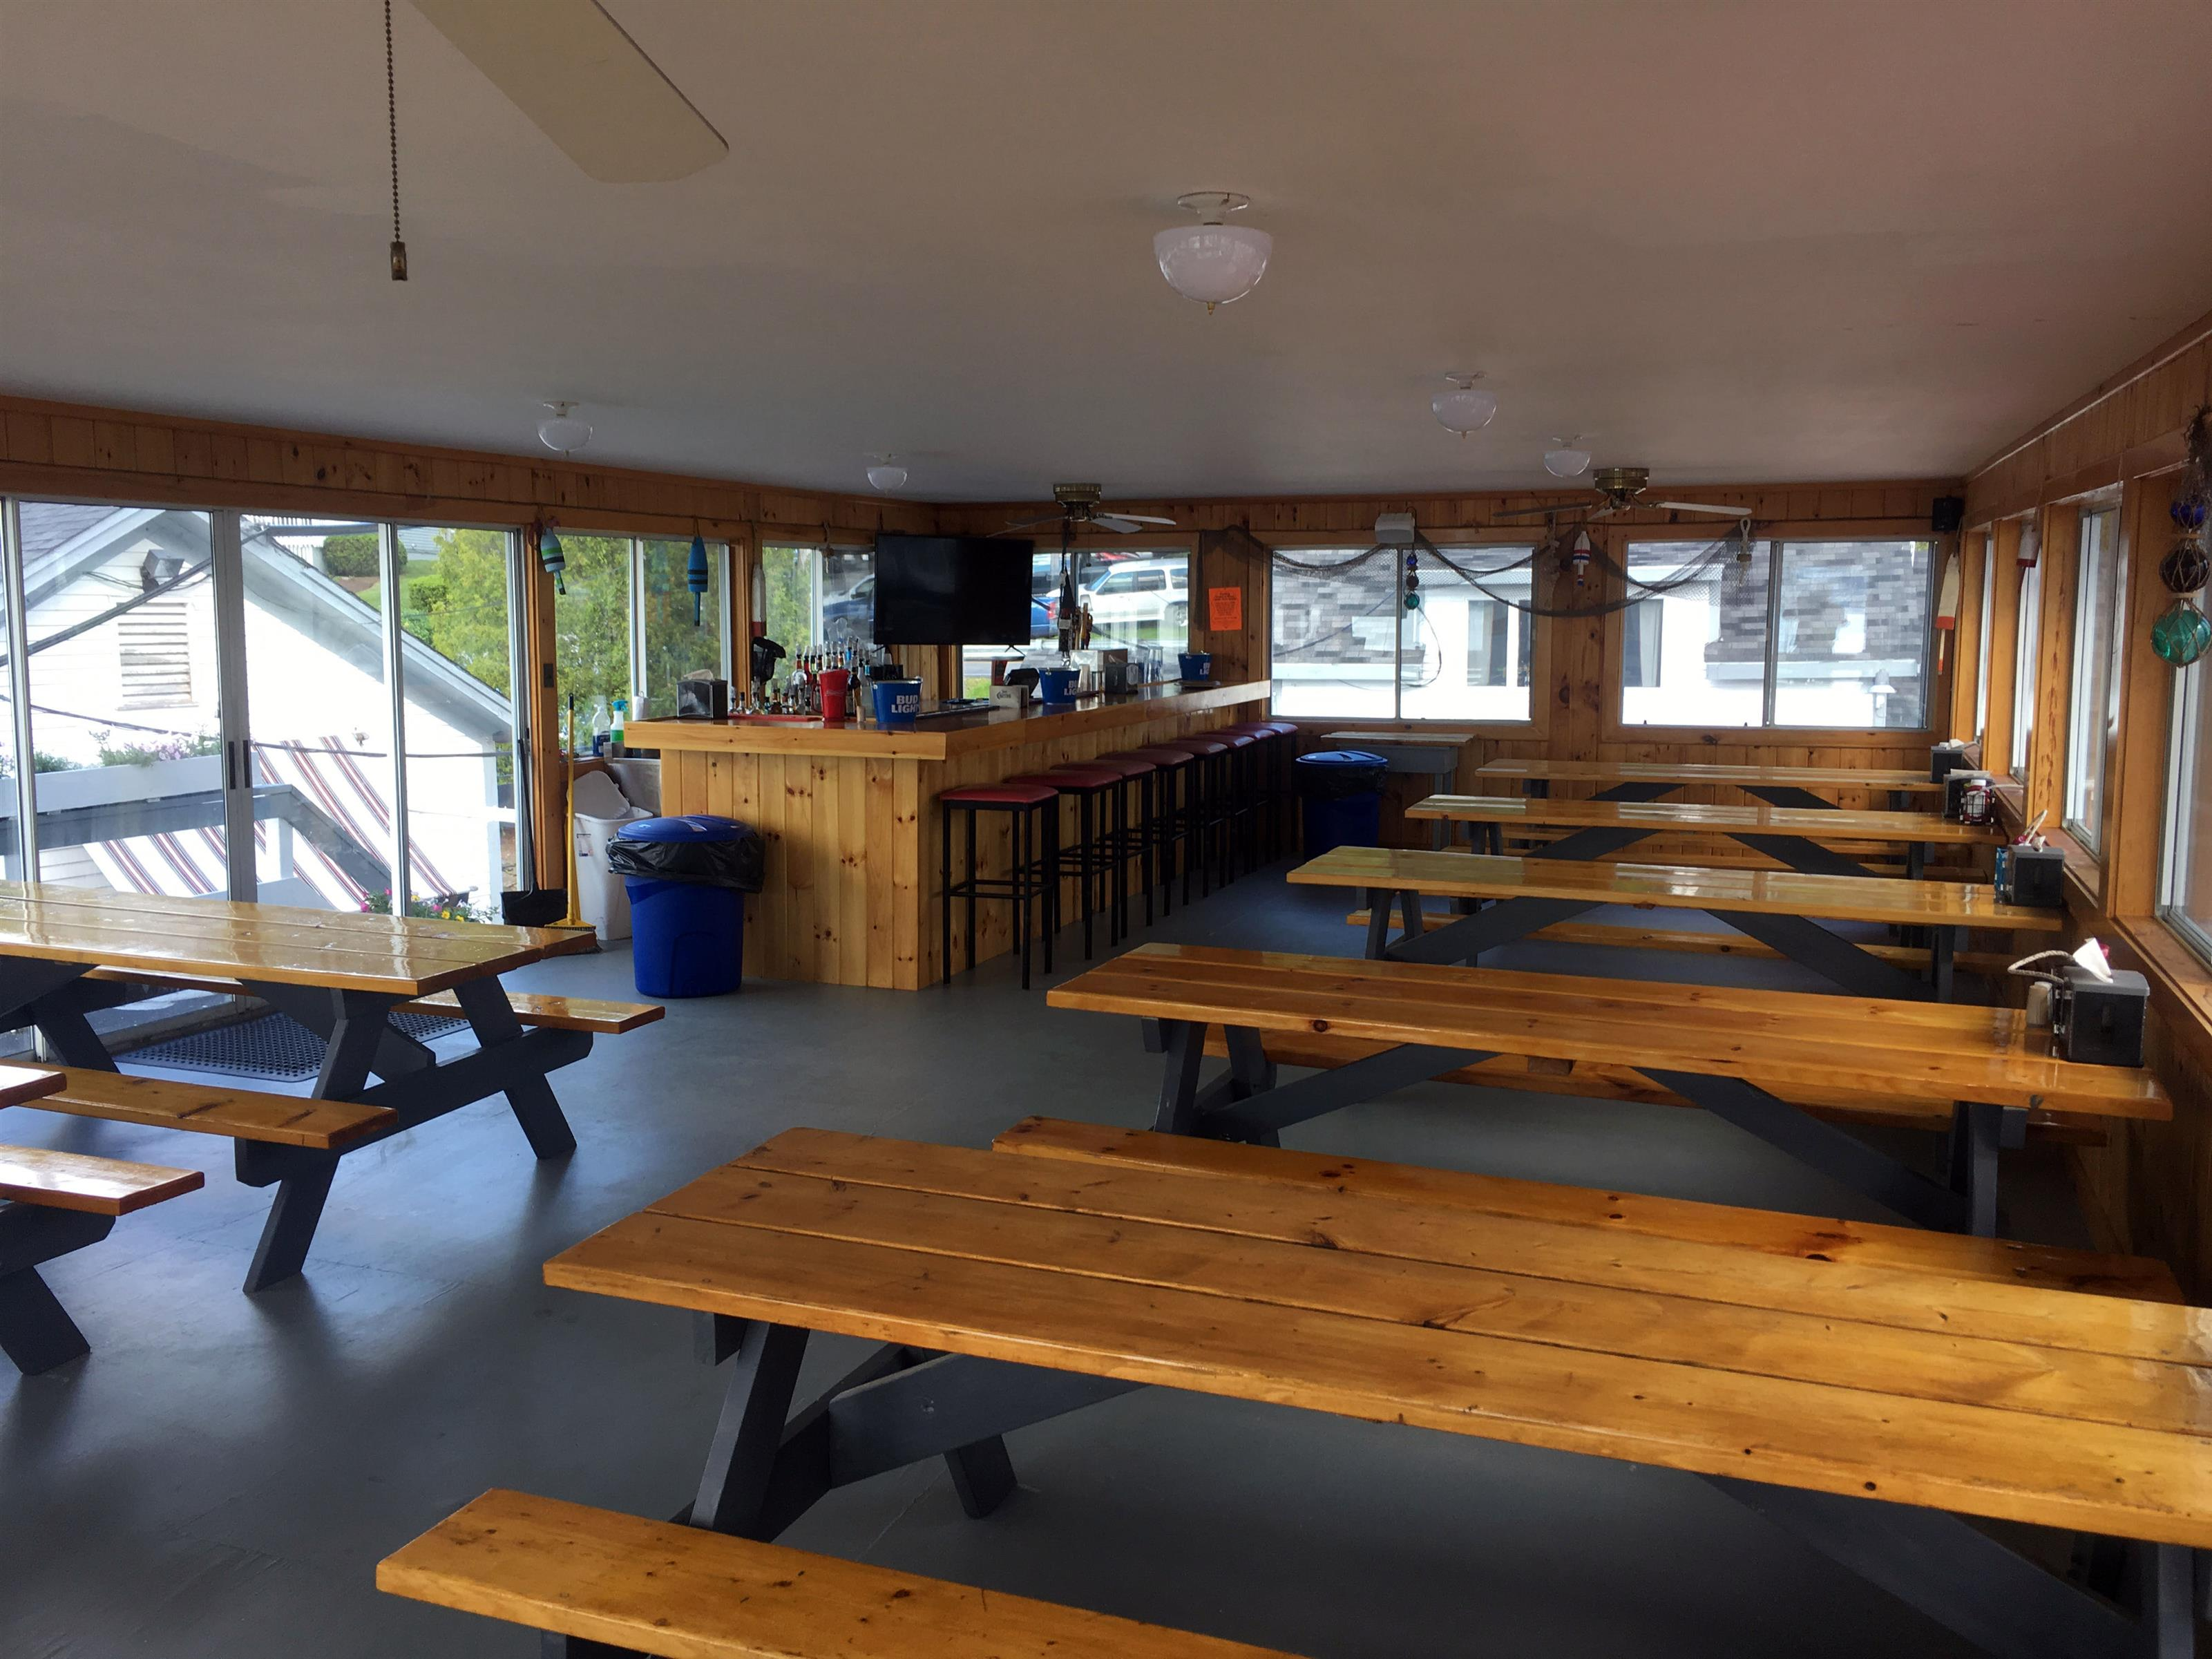 Room with empty wooden picnic tables next to wooden bar